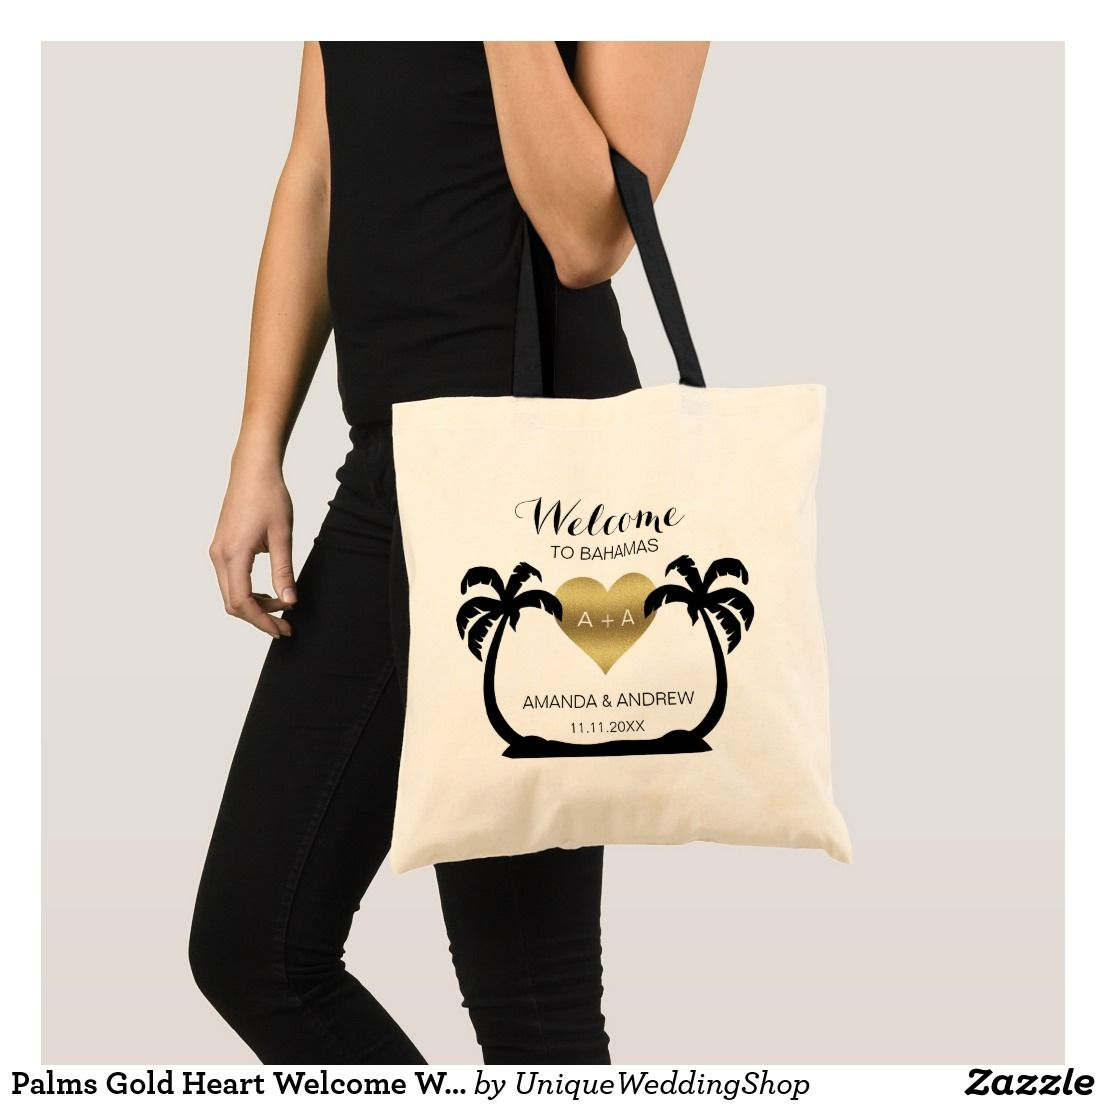 Palms Gold Heart Welcome Wedding Gift Tote Bag Weddingtote Bags